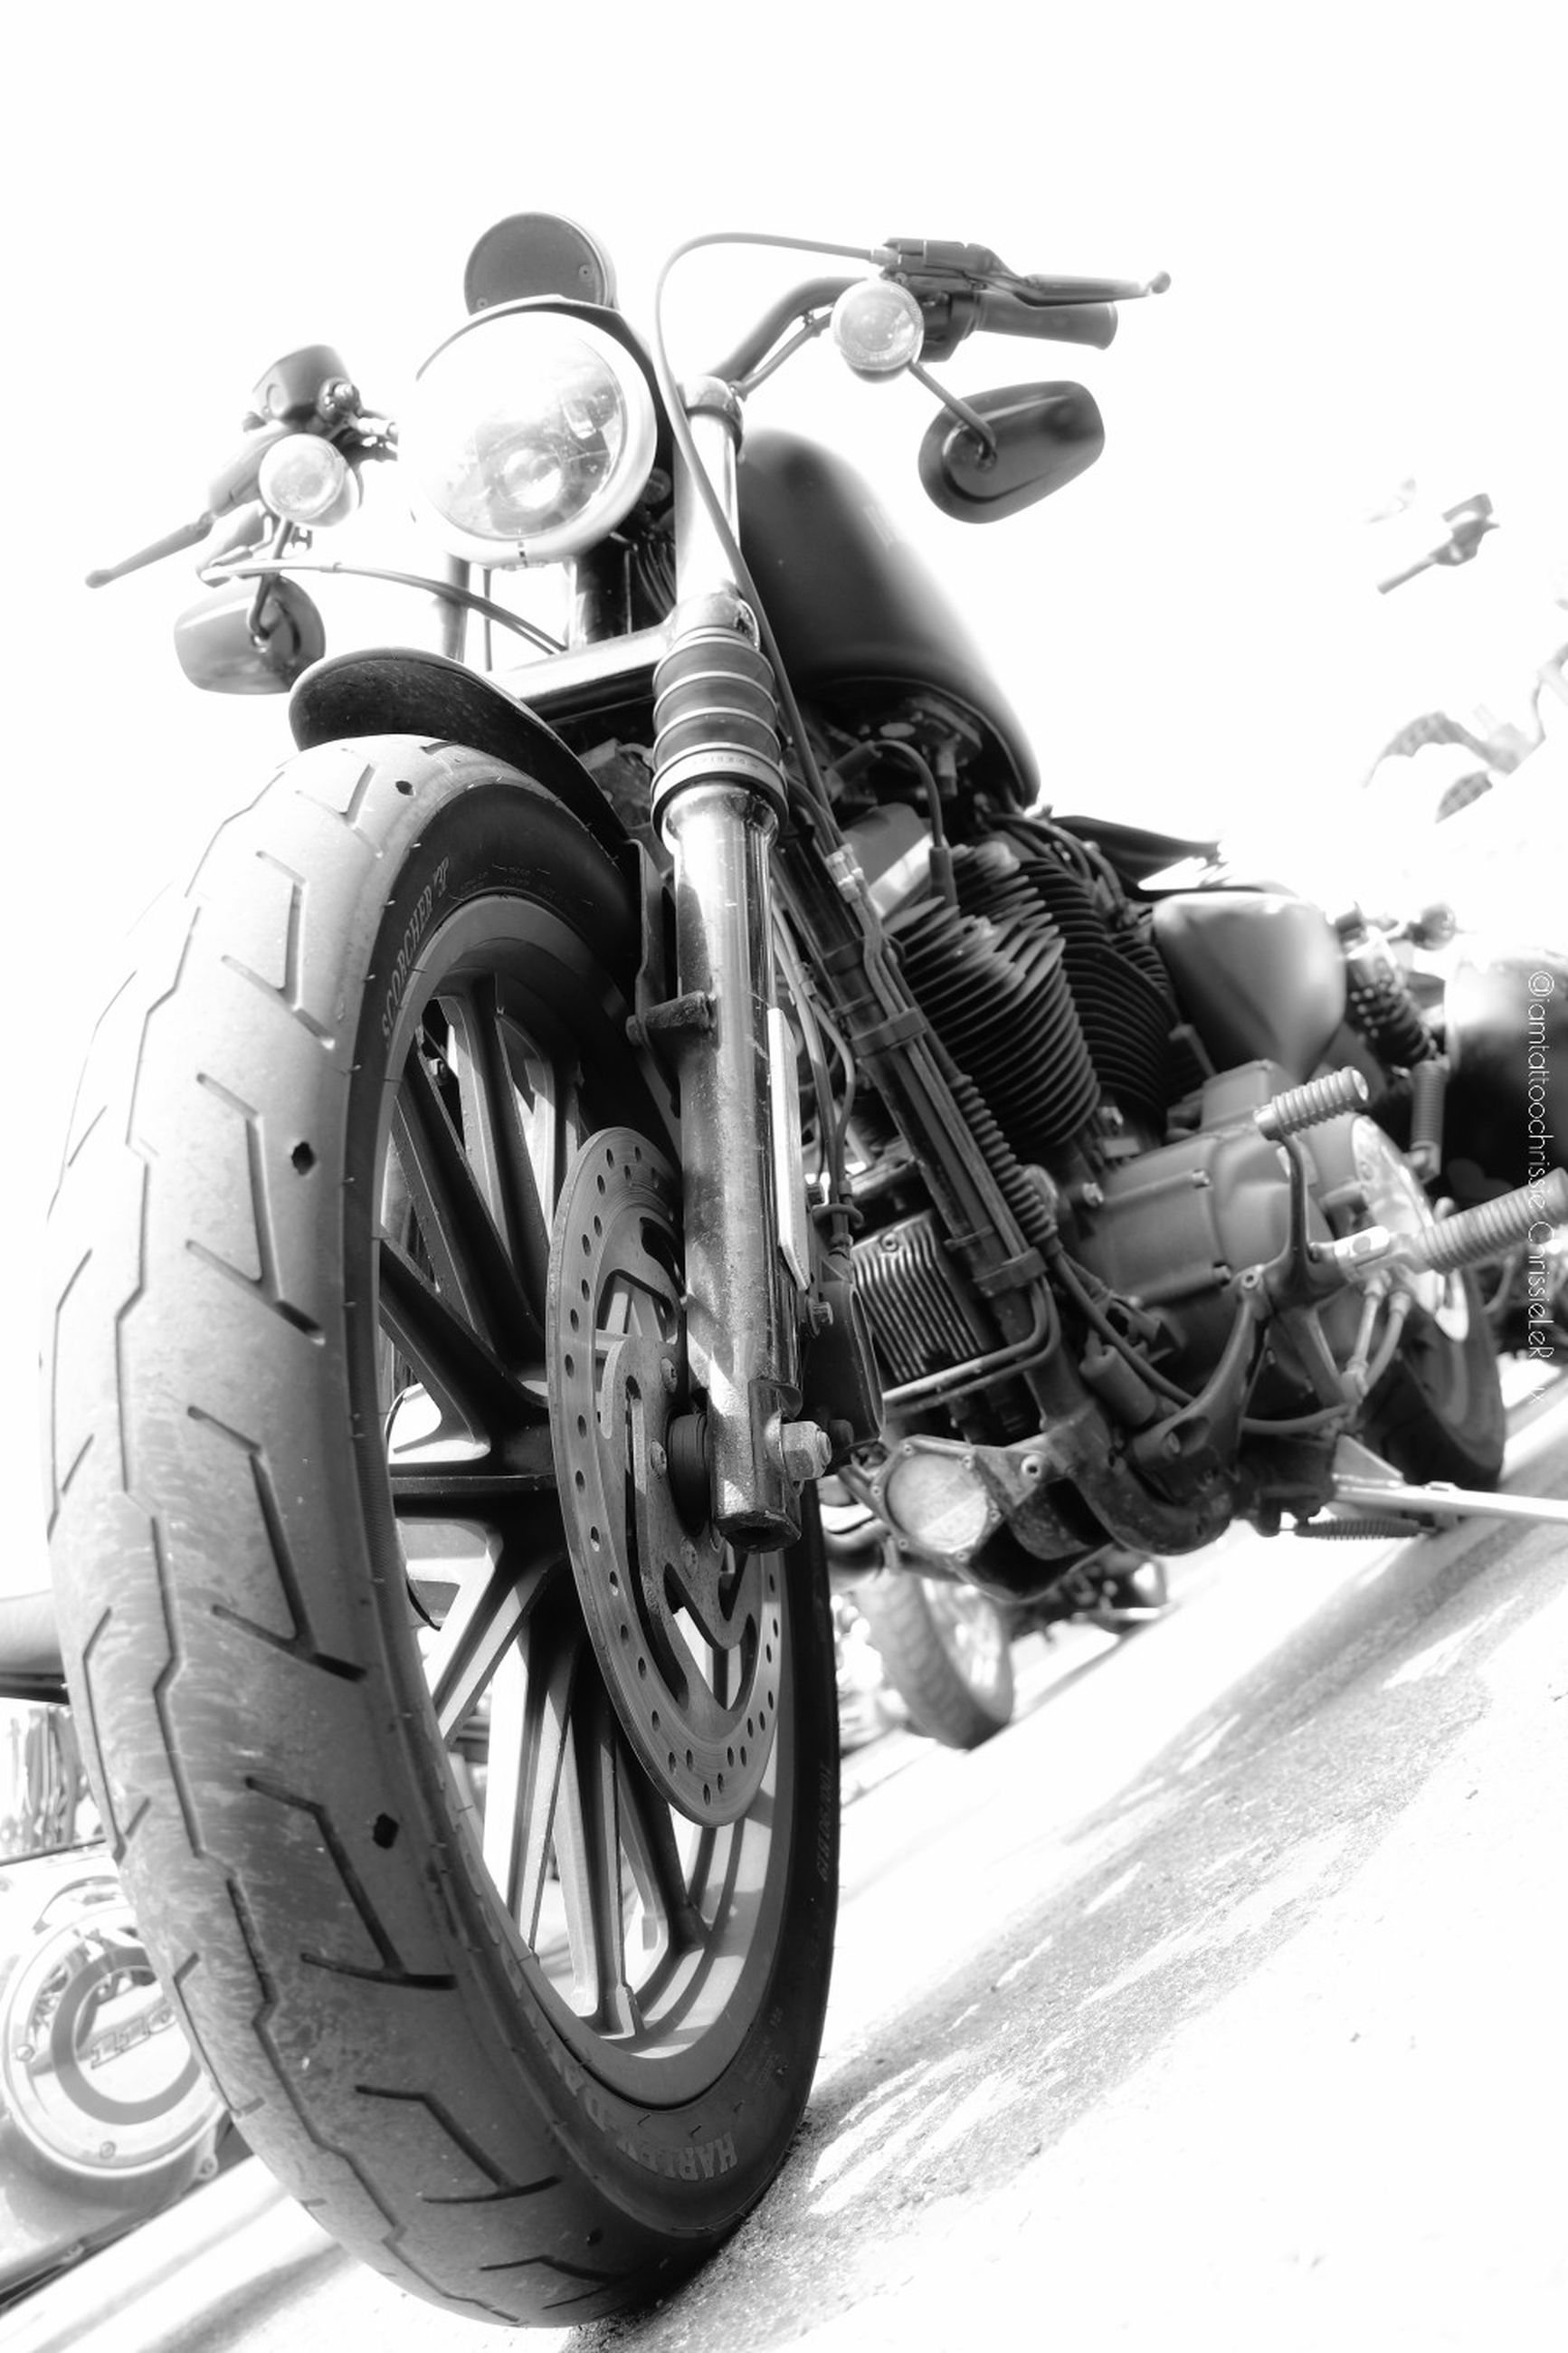 transportation, mode of transportation, motorcycle, land vehicle, day, street, one person, outdoors, nature, real people, city, low angle view, men, sky, stationary, road, wheel, helmet, scooter, crash helmet